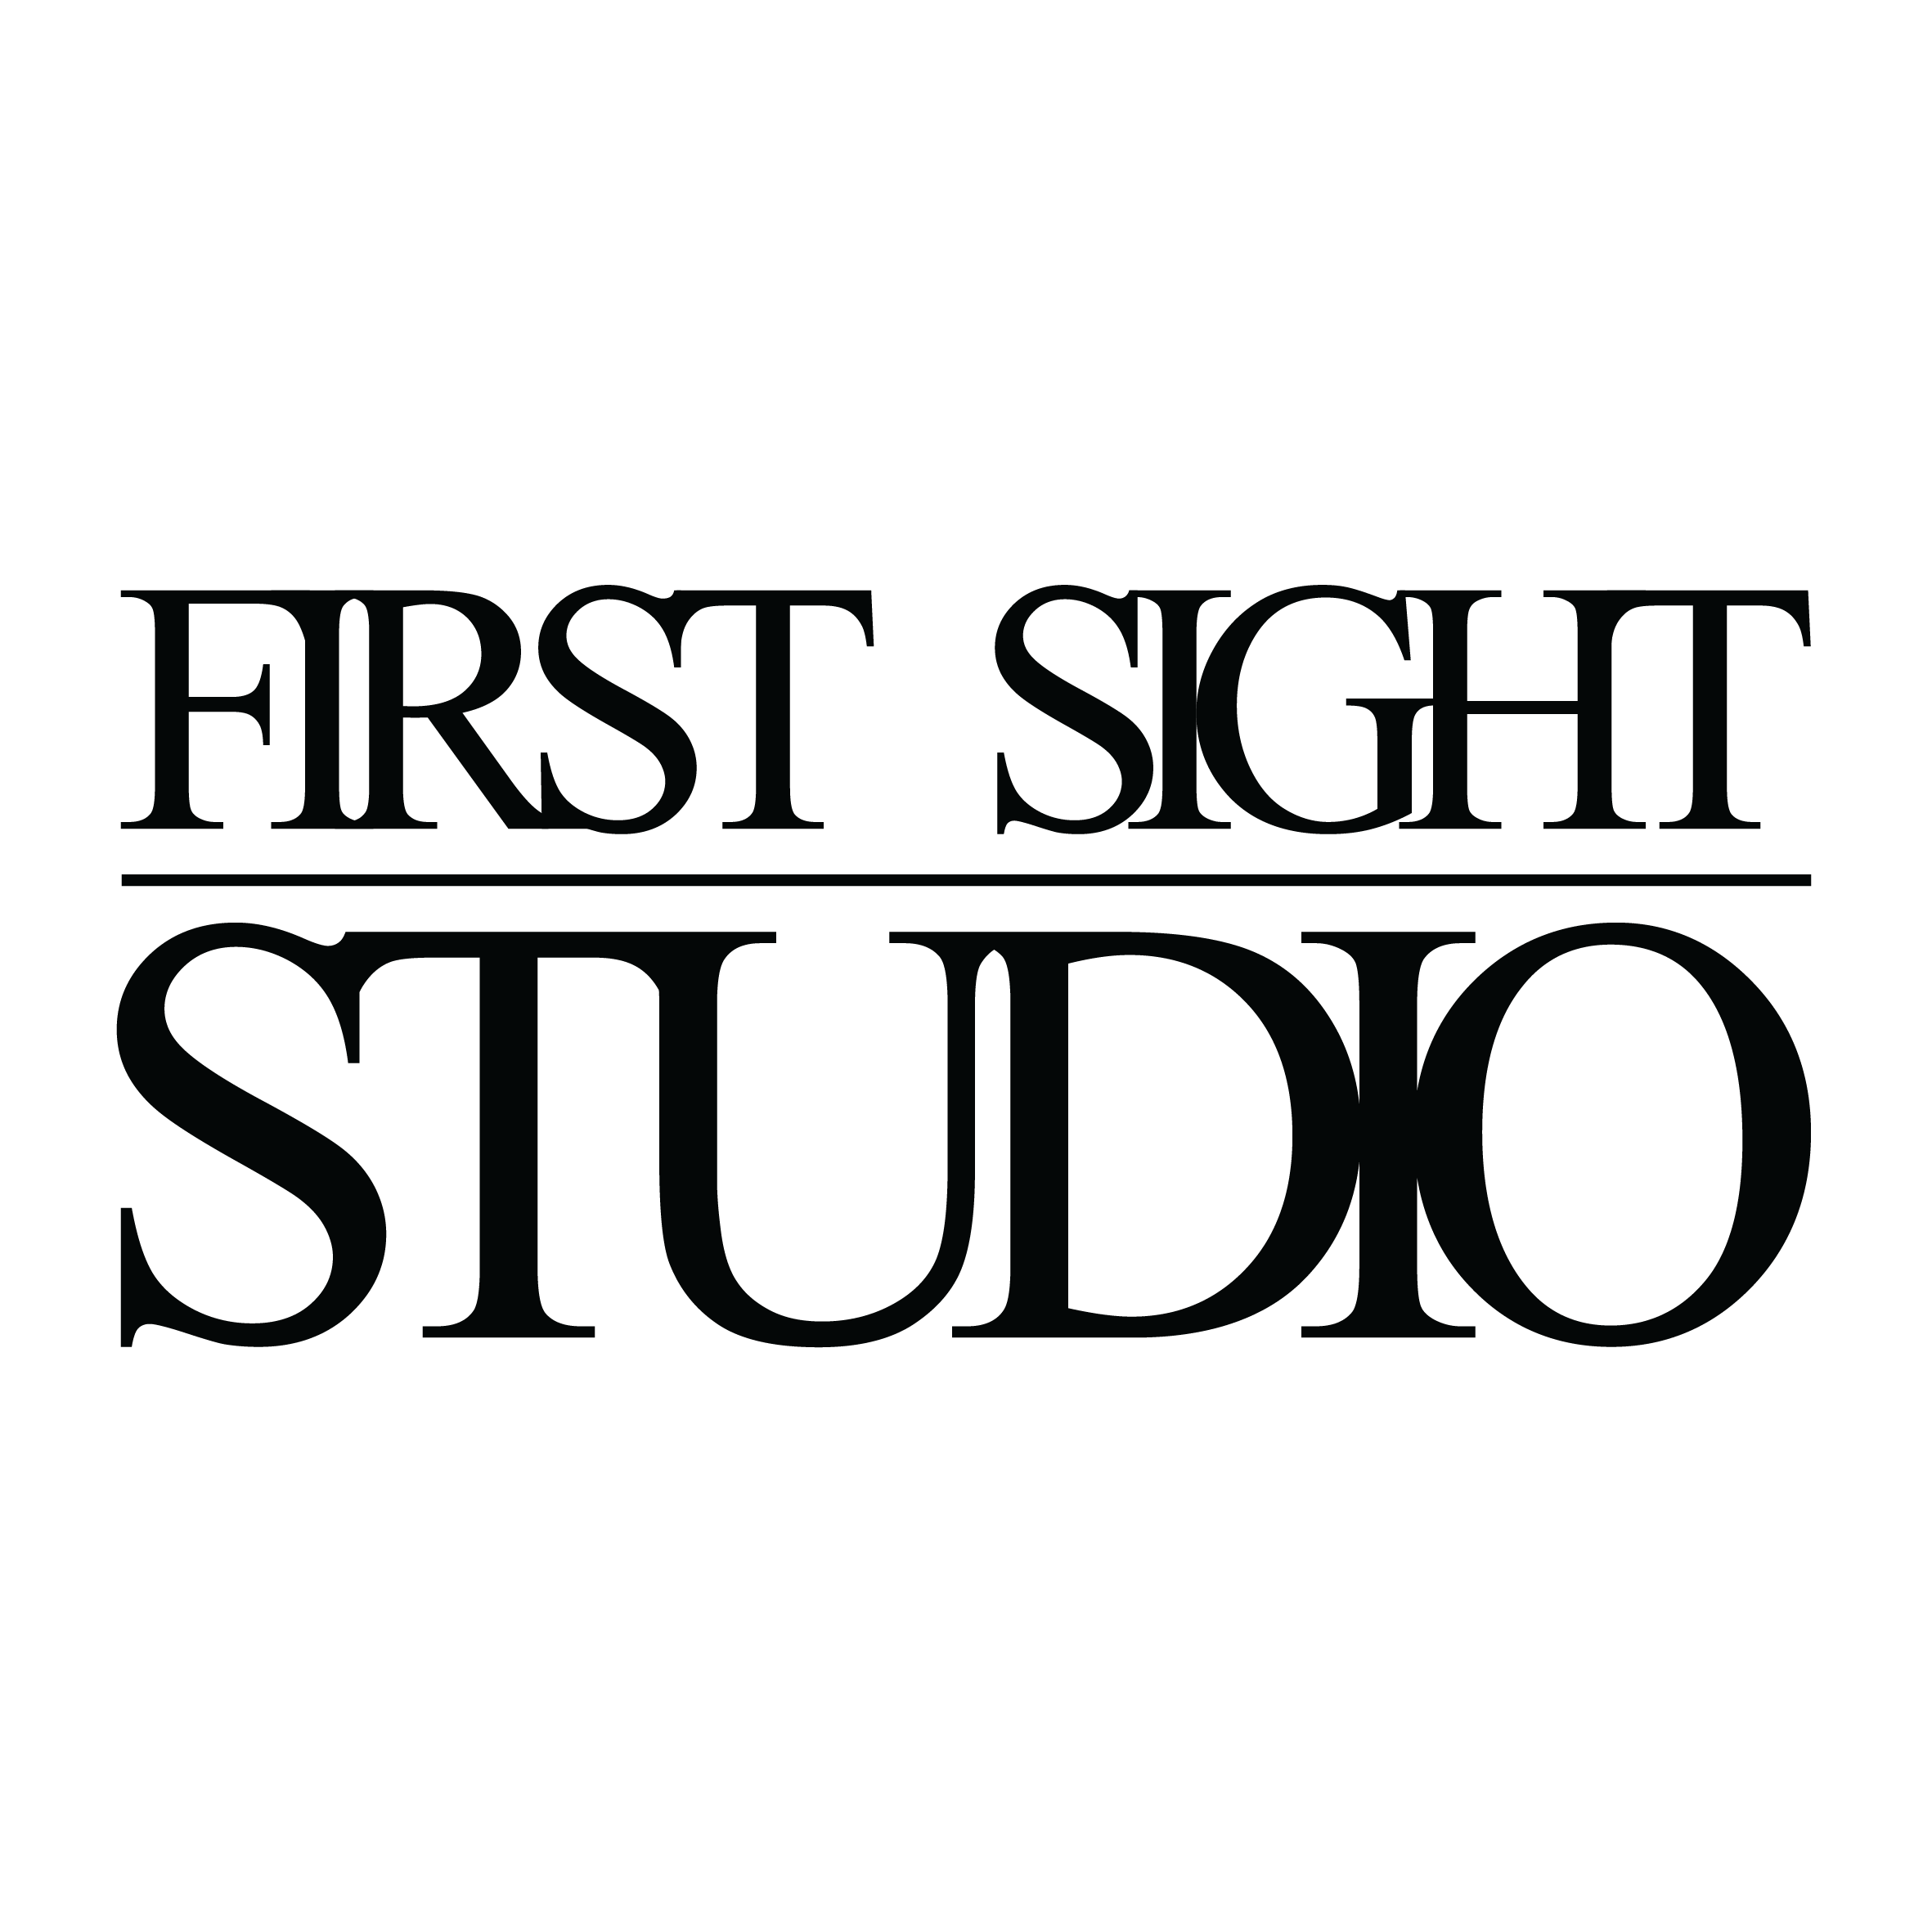 First Sight Studio